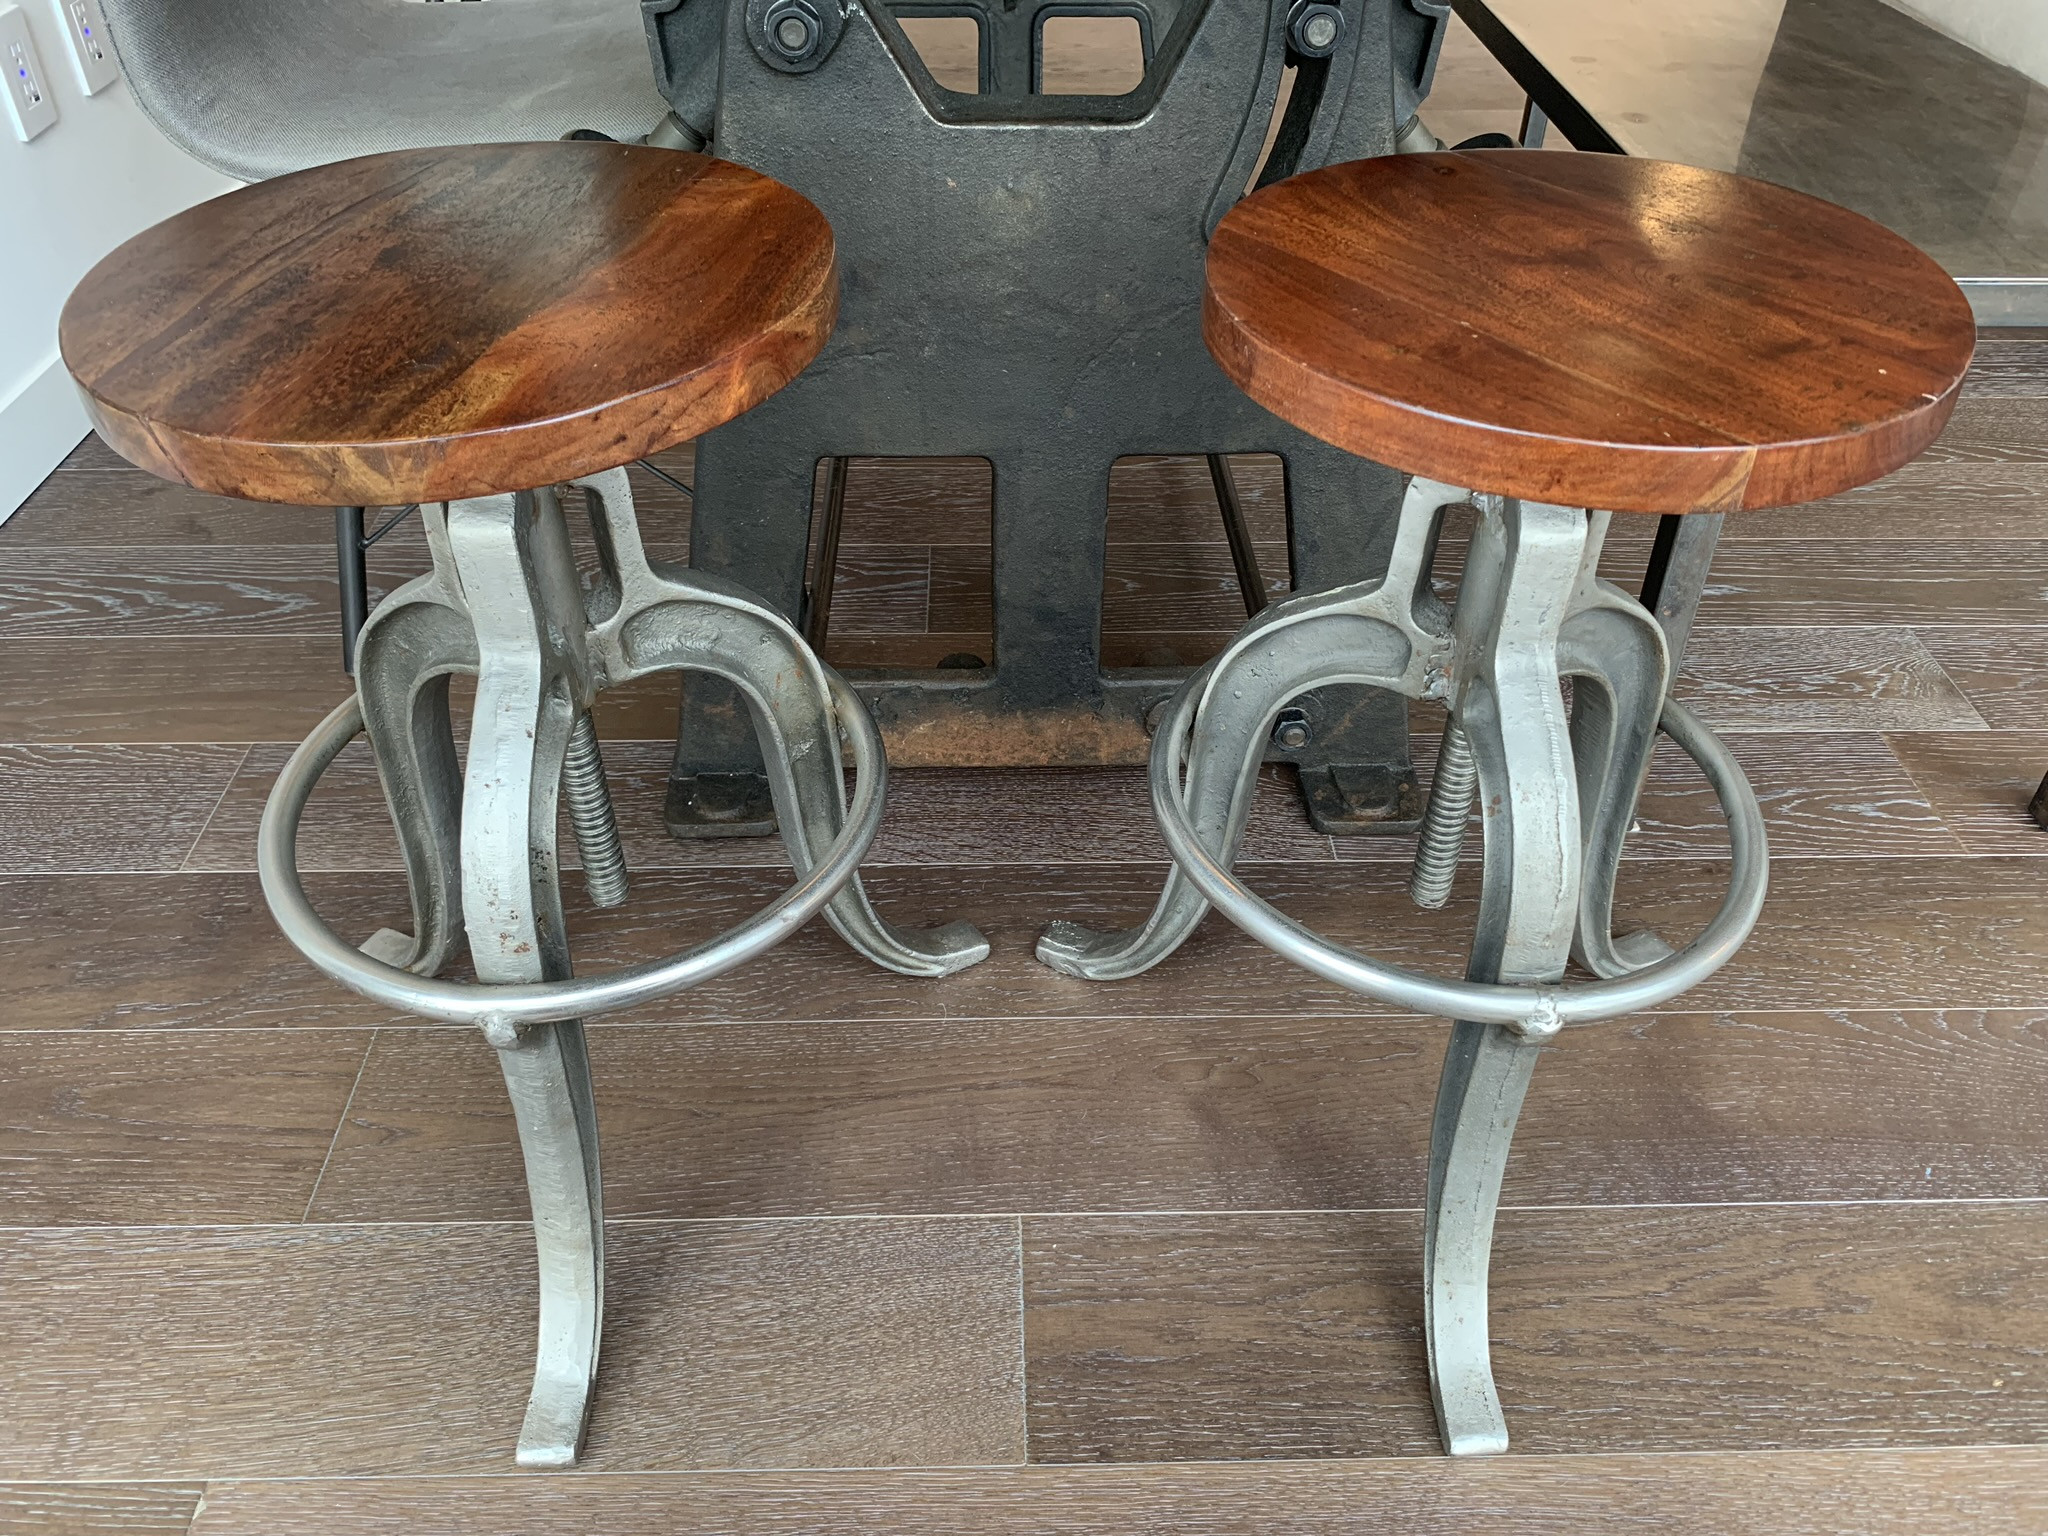 Adjustable Height Industrial Counter Stools